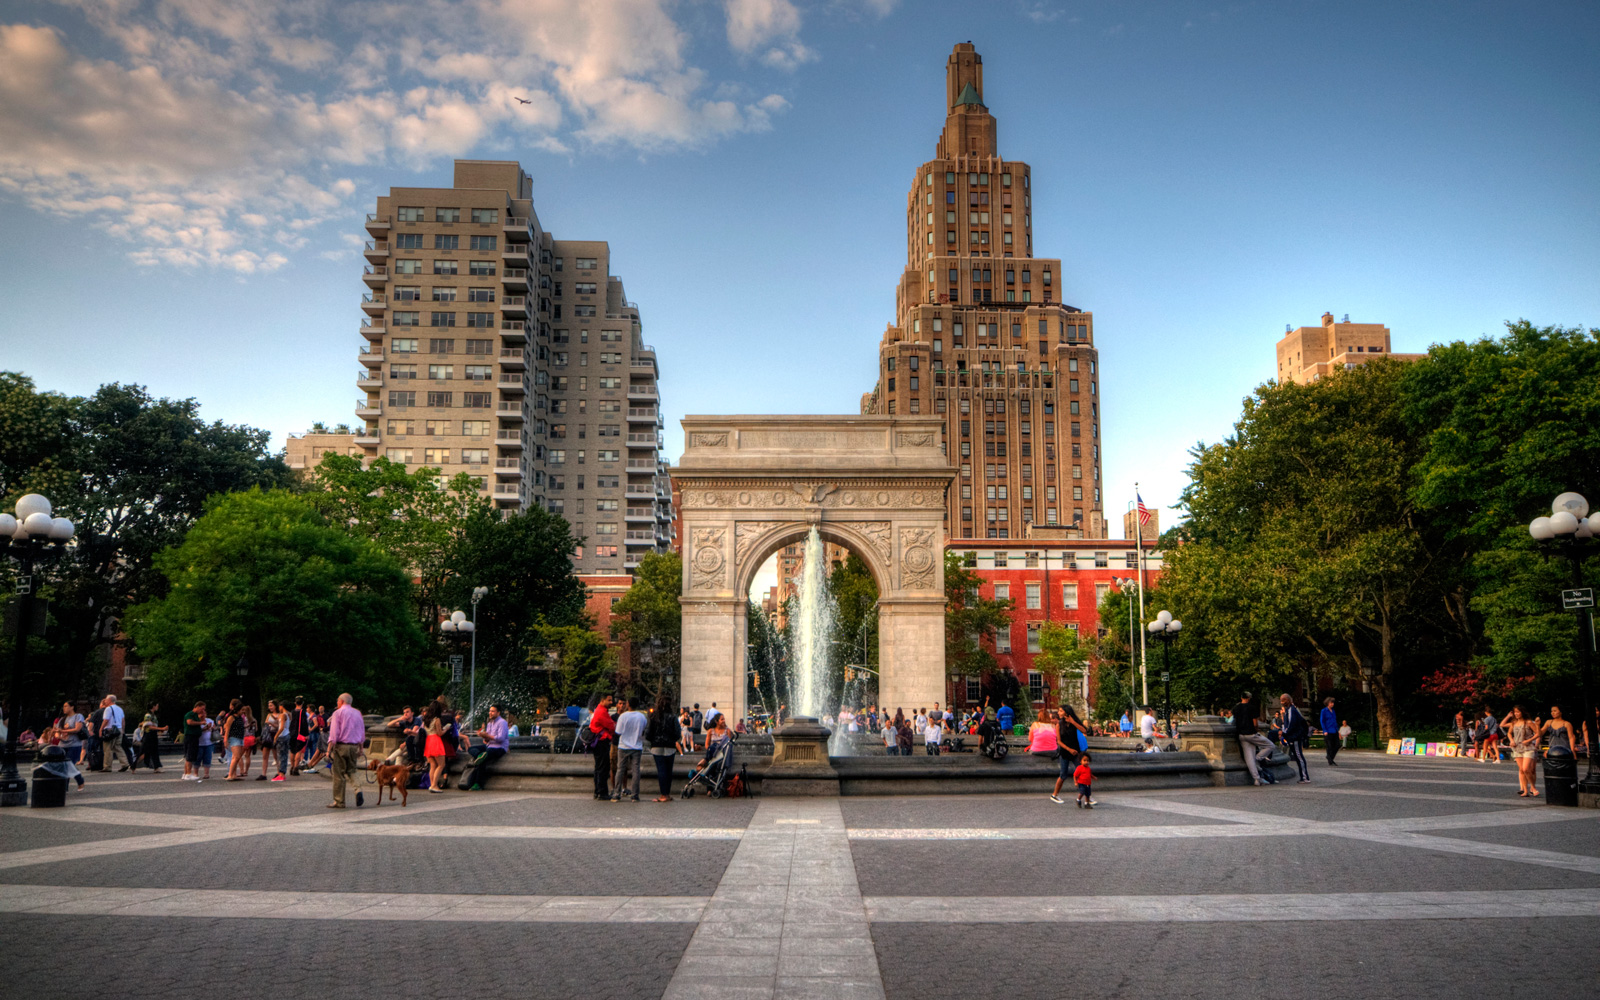 Washington Square Park, in New York City.